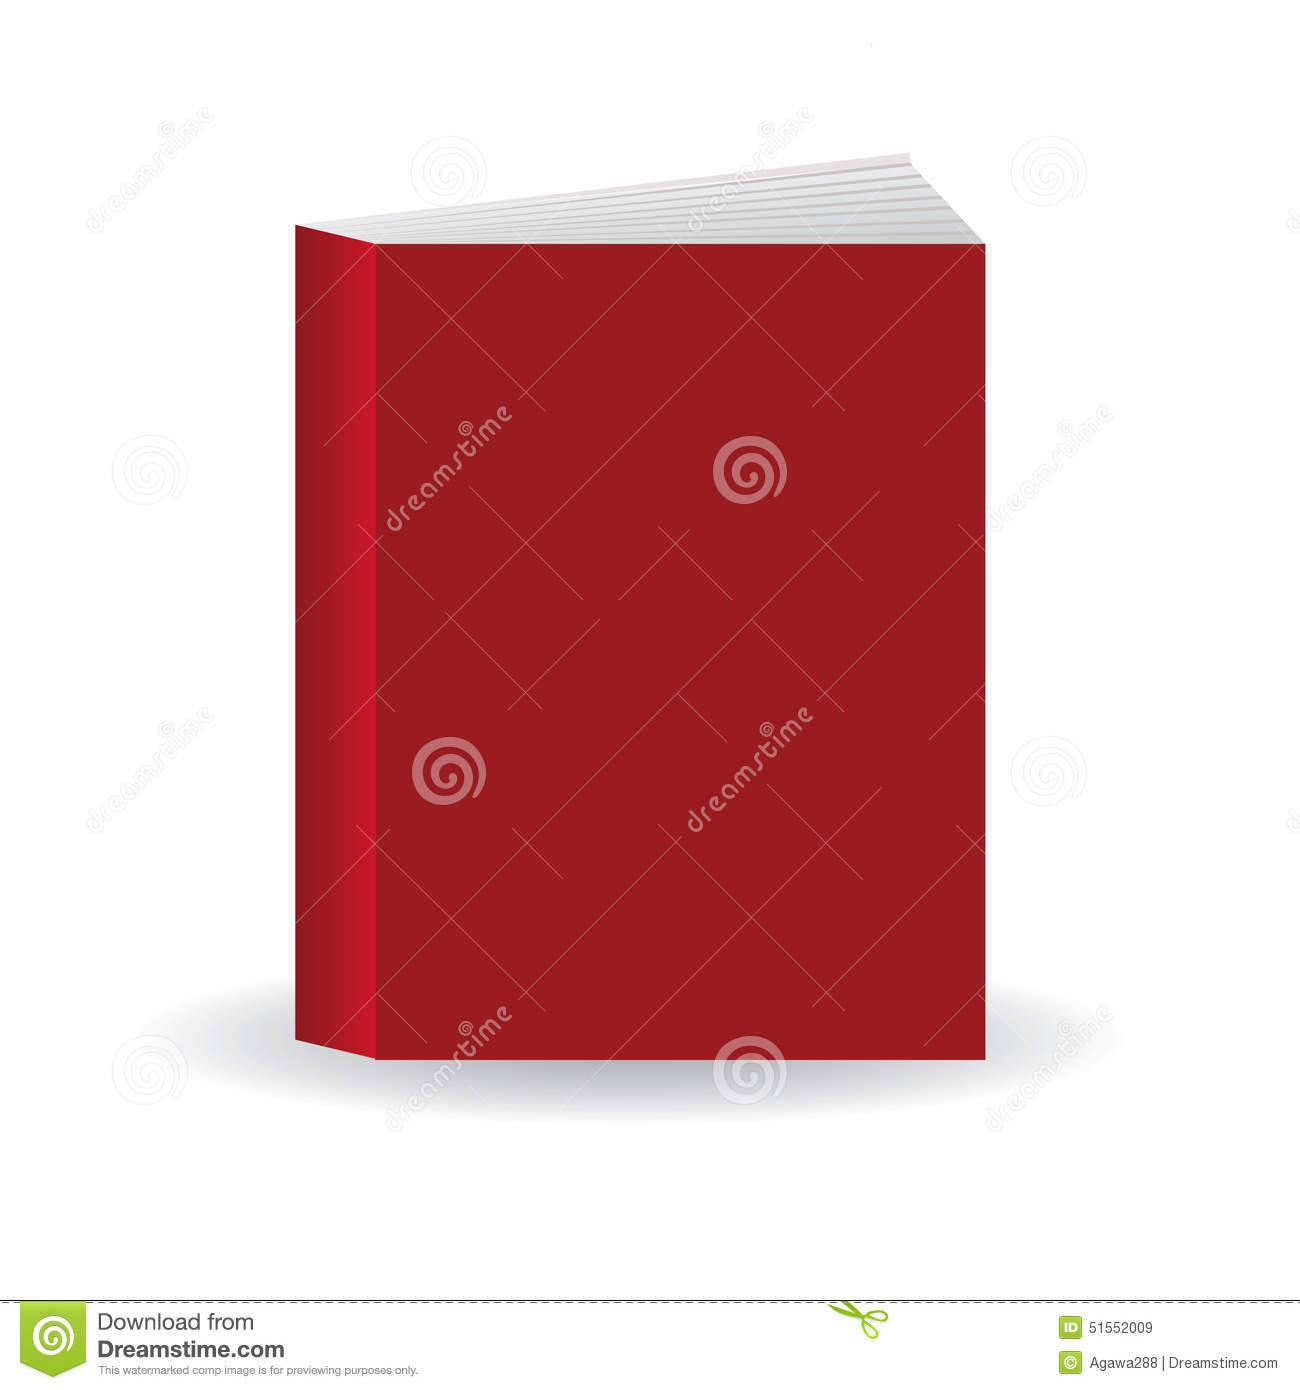 How To Make A Book Cover Using Illustrator : Blank book cover vector illustration isolated cartoon